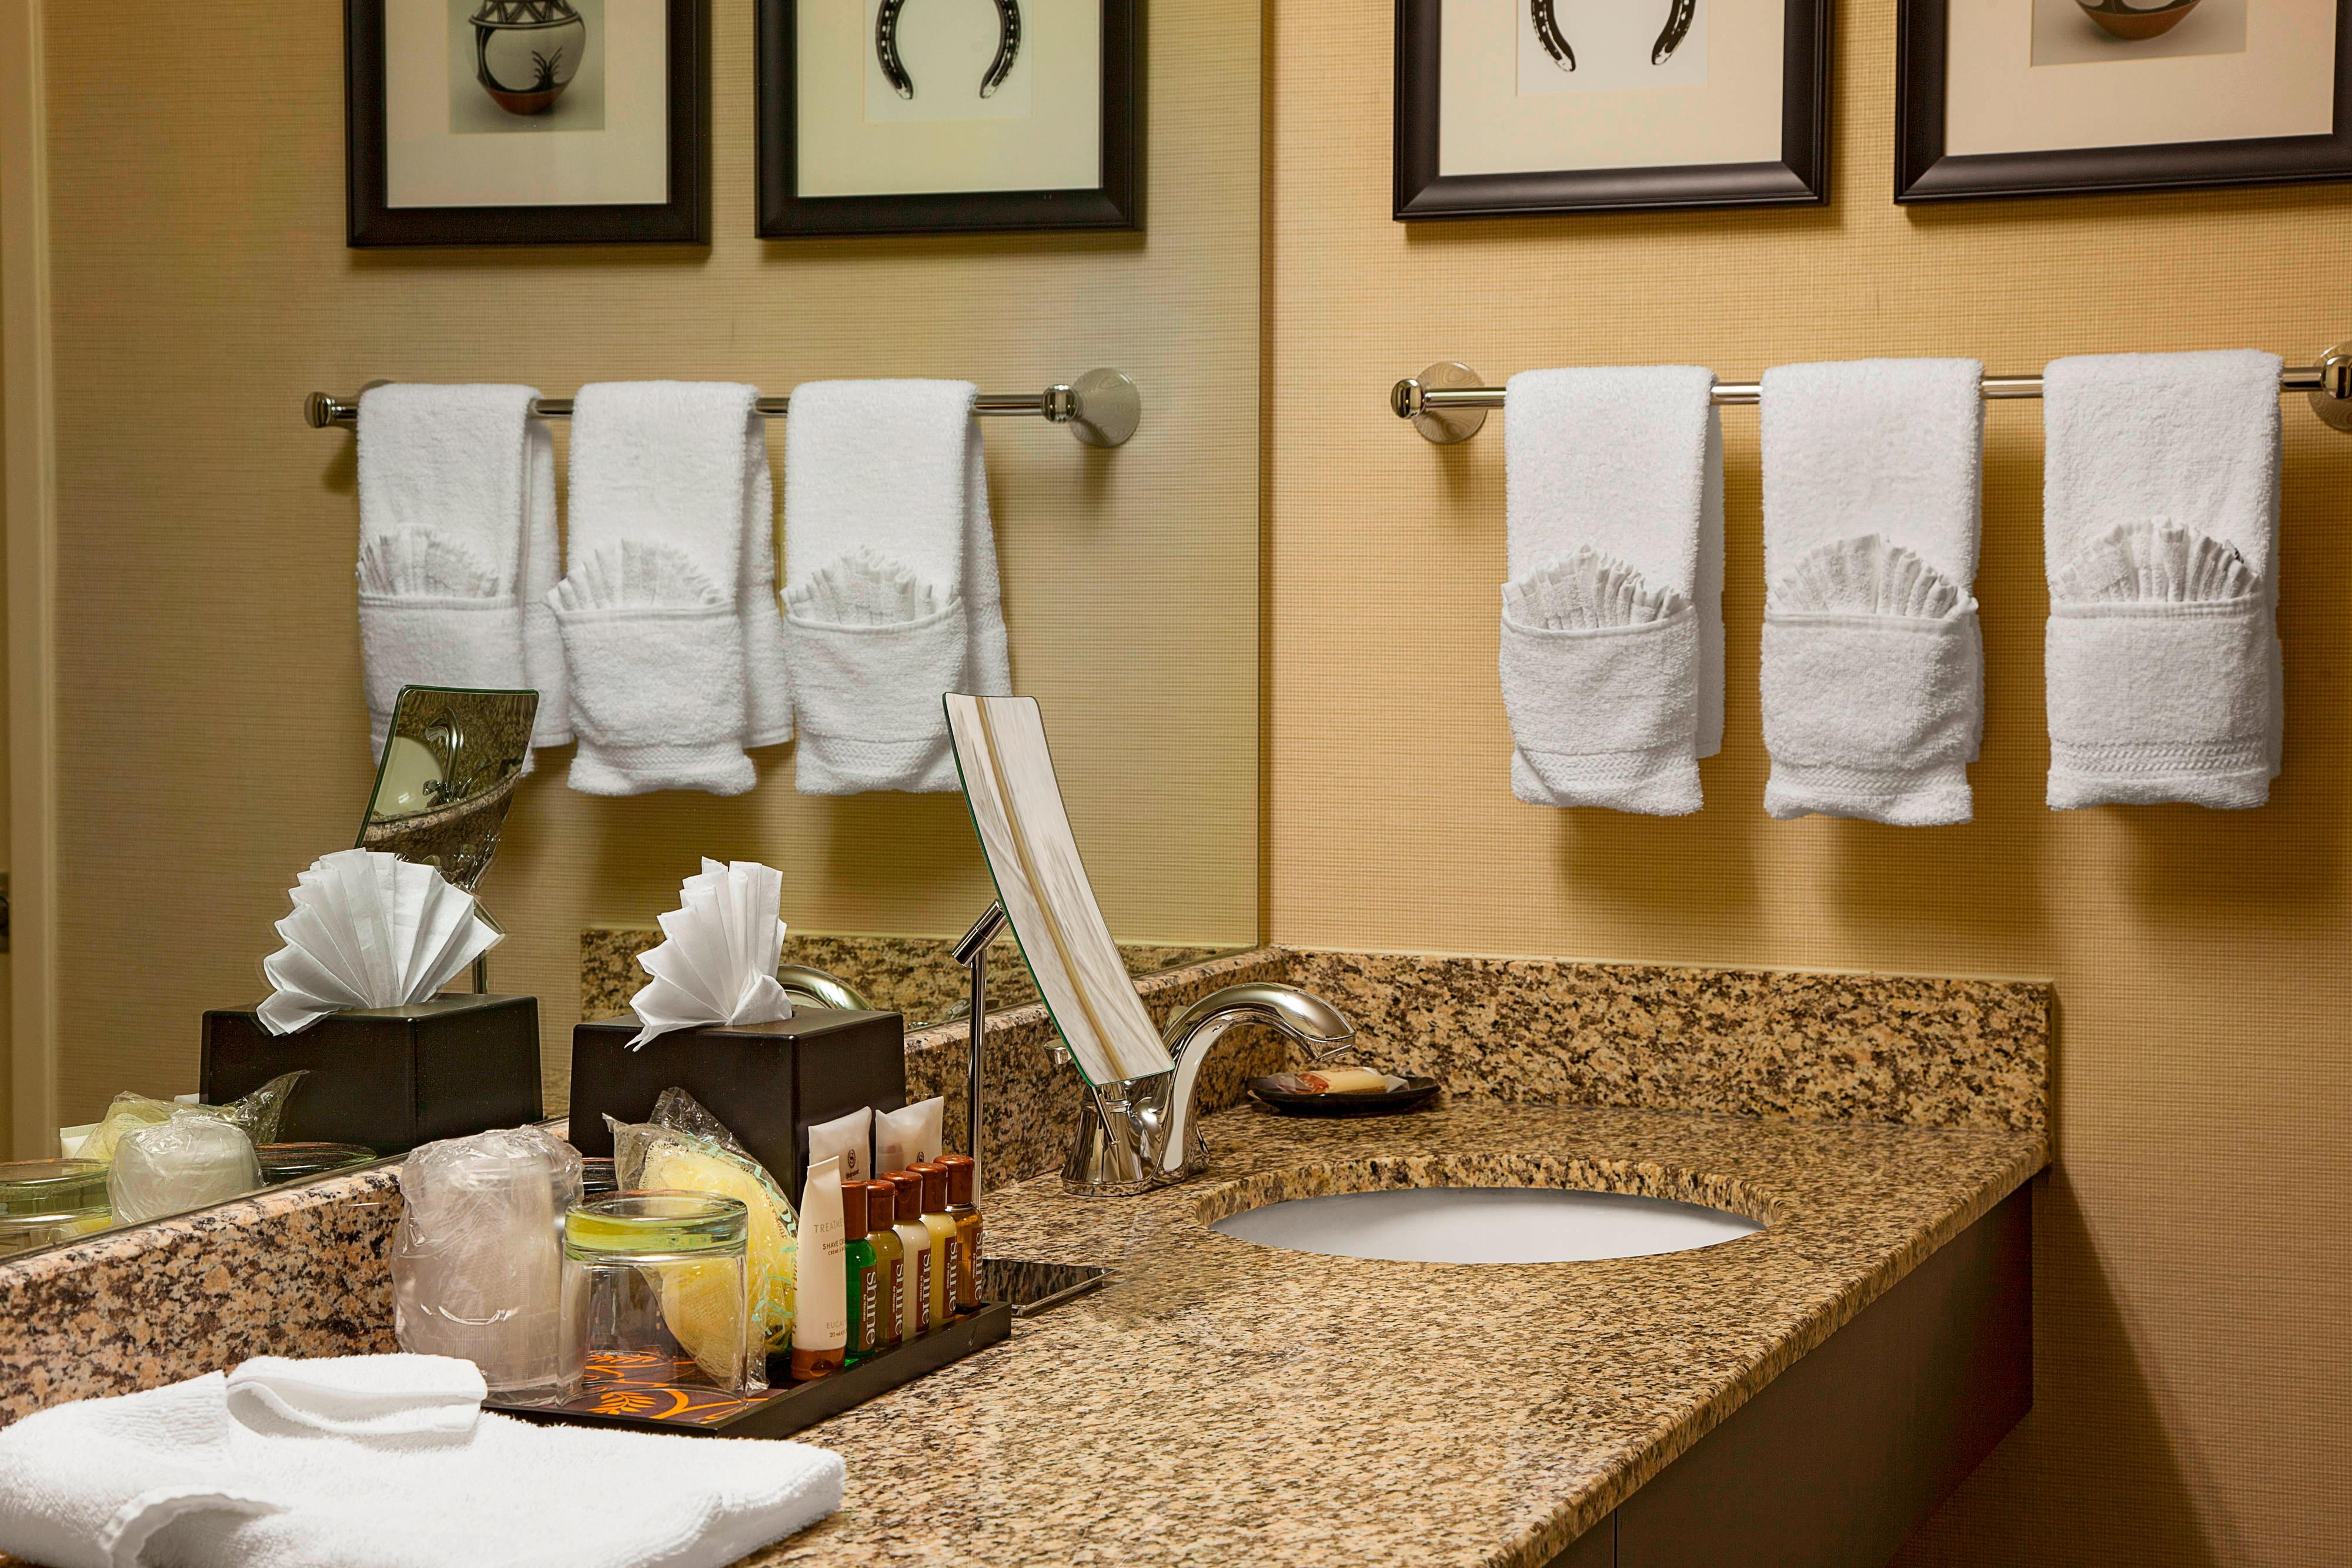 Club Suite Amenities